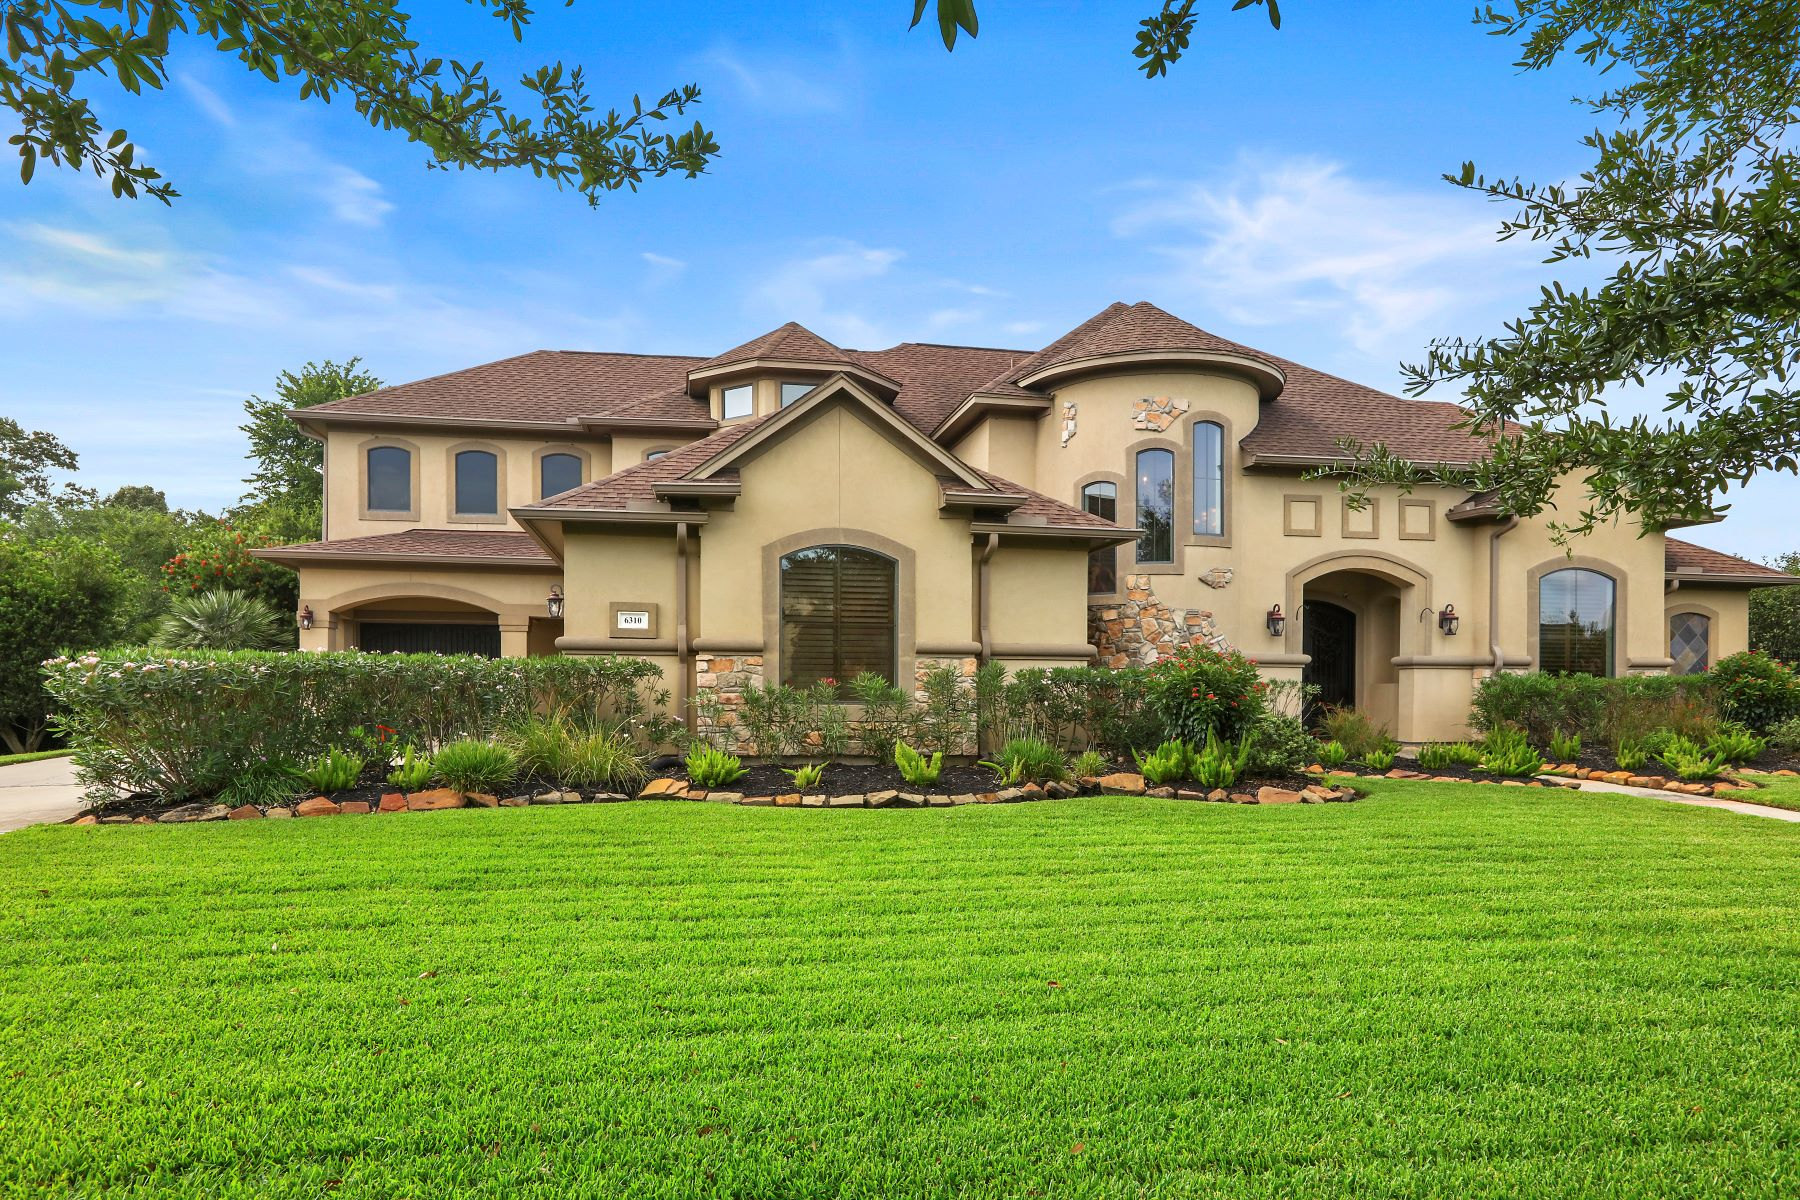 Single Family Homes for Sale at 6310 Royal Point Drive 6310 South Royal Point Drive Kingwood, Texas 77345 United States